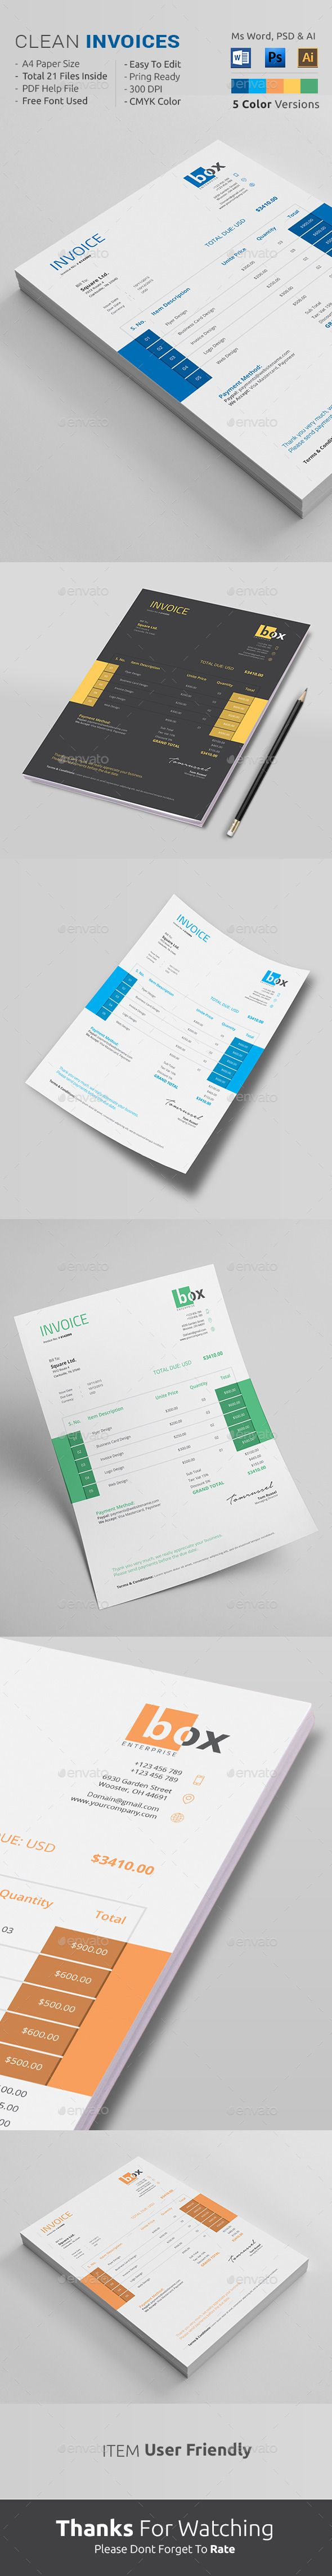 Clean Invoice Template PSD, AI #design Download: http://graphicriver.net/item/clean-invoice/13678789?ref=ksioks